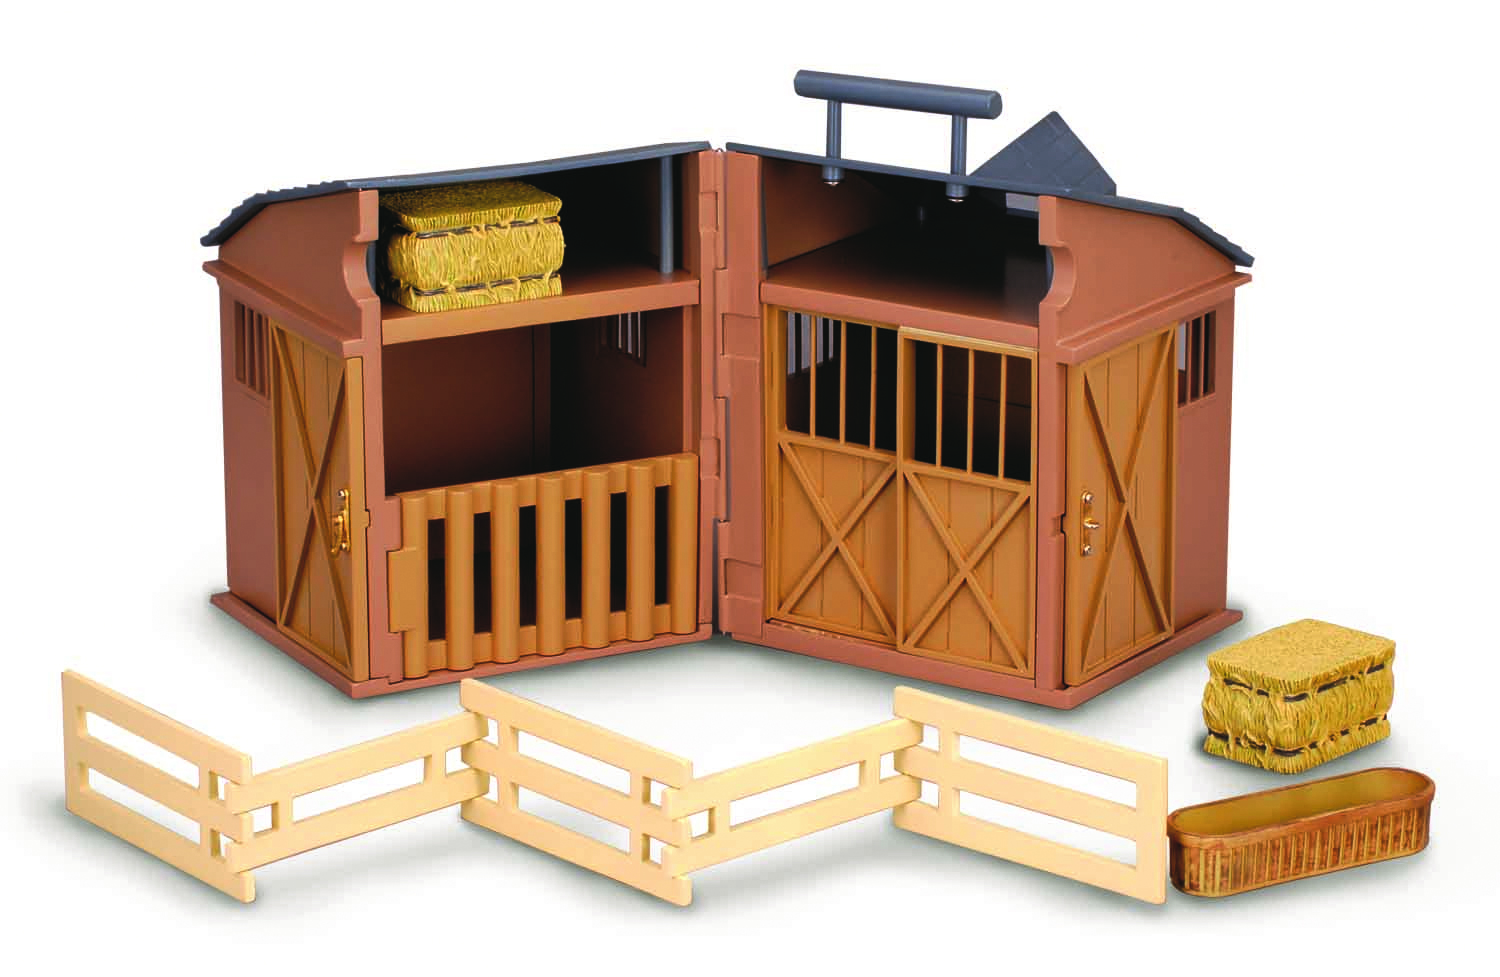 Kelley Stable Playset